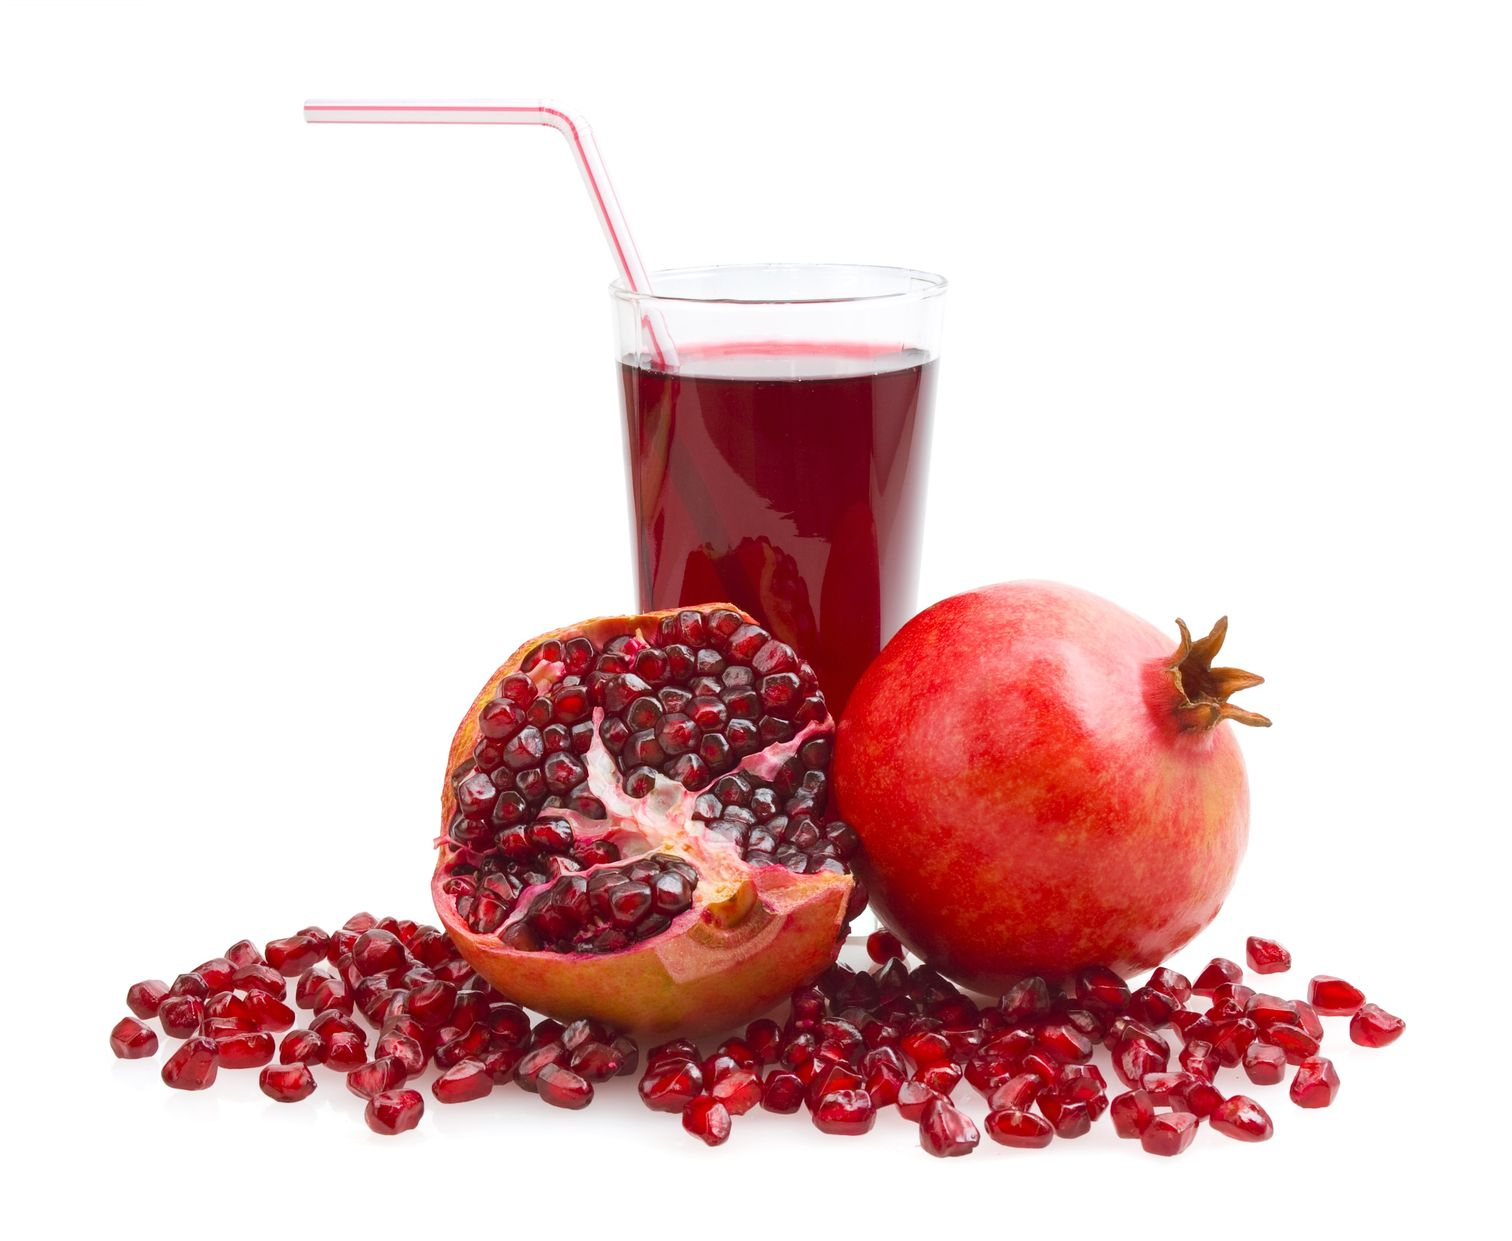 pomegranate juice prevents free radical damage from exercise and improves recovery time